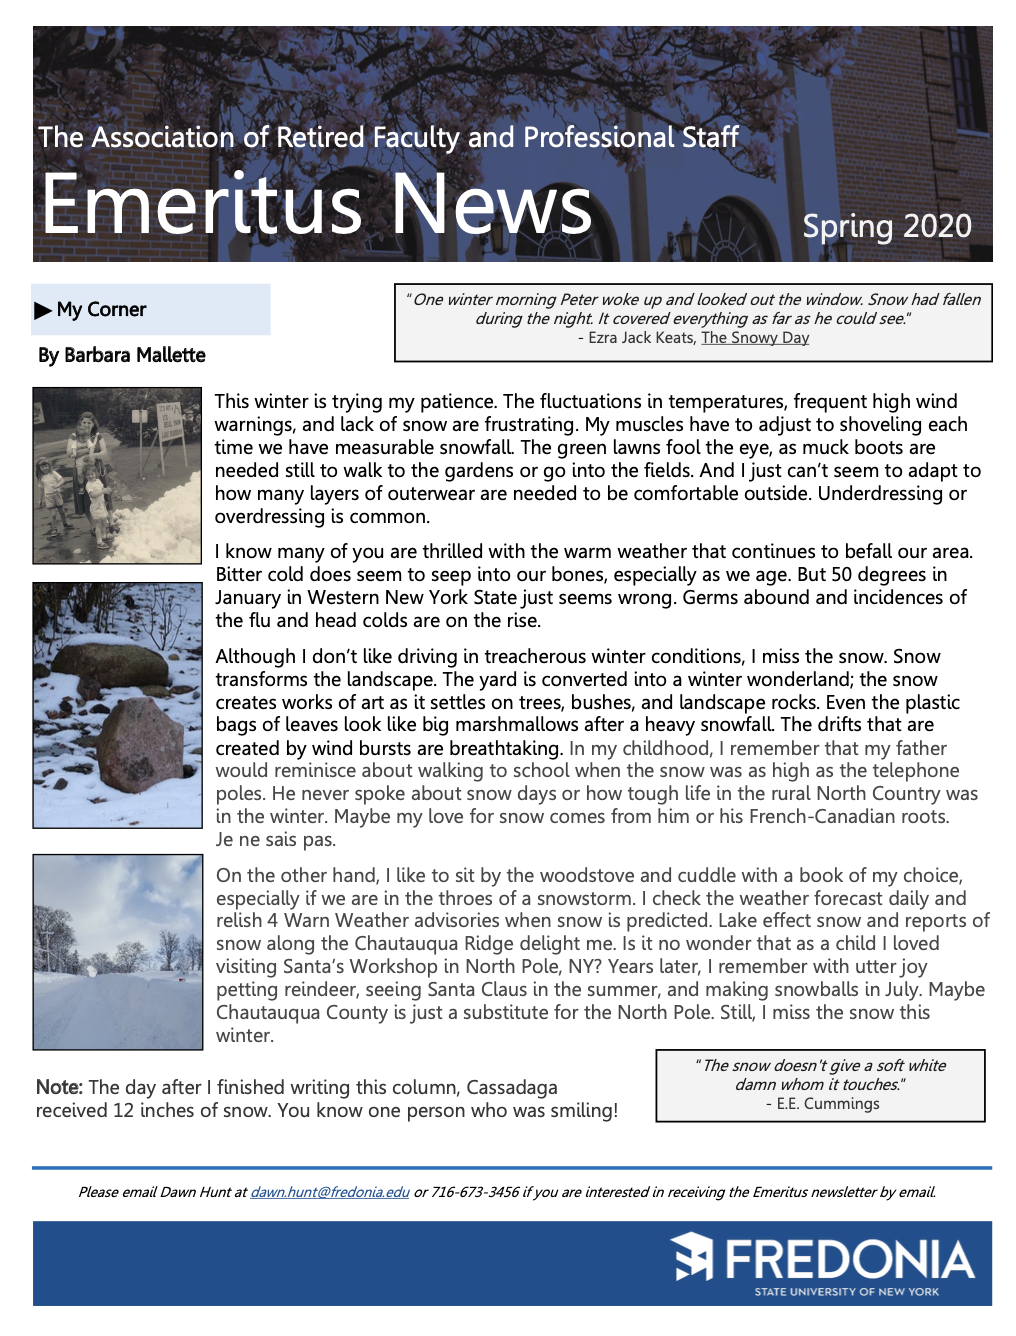 Click to Download the Emeritus News from The Association of Retired Faculty and Professional Staff